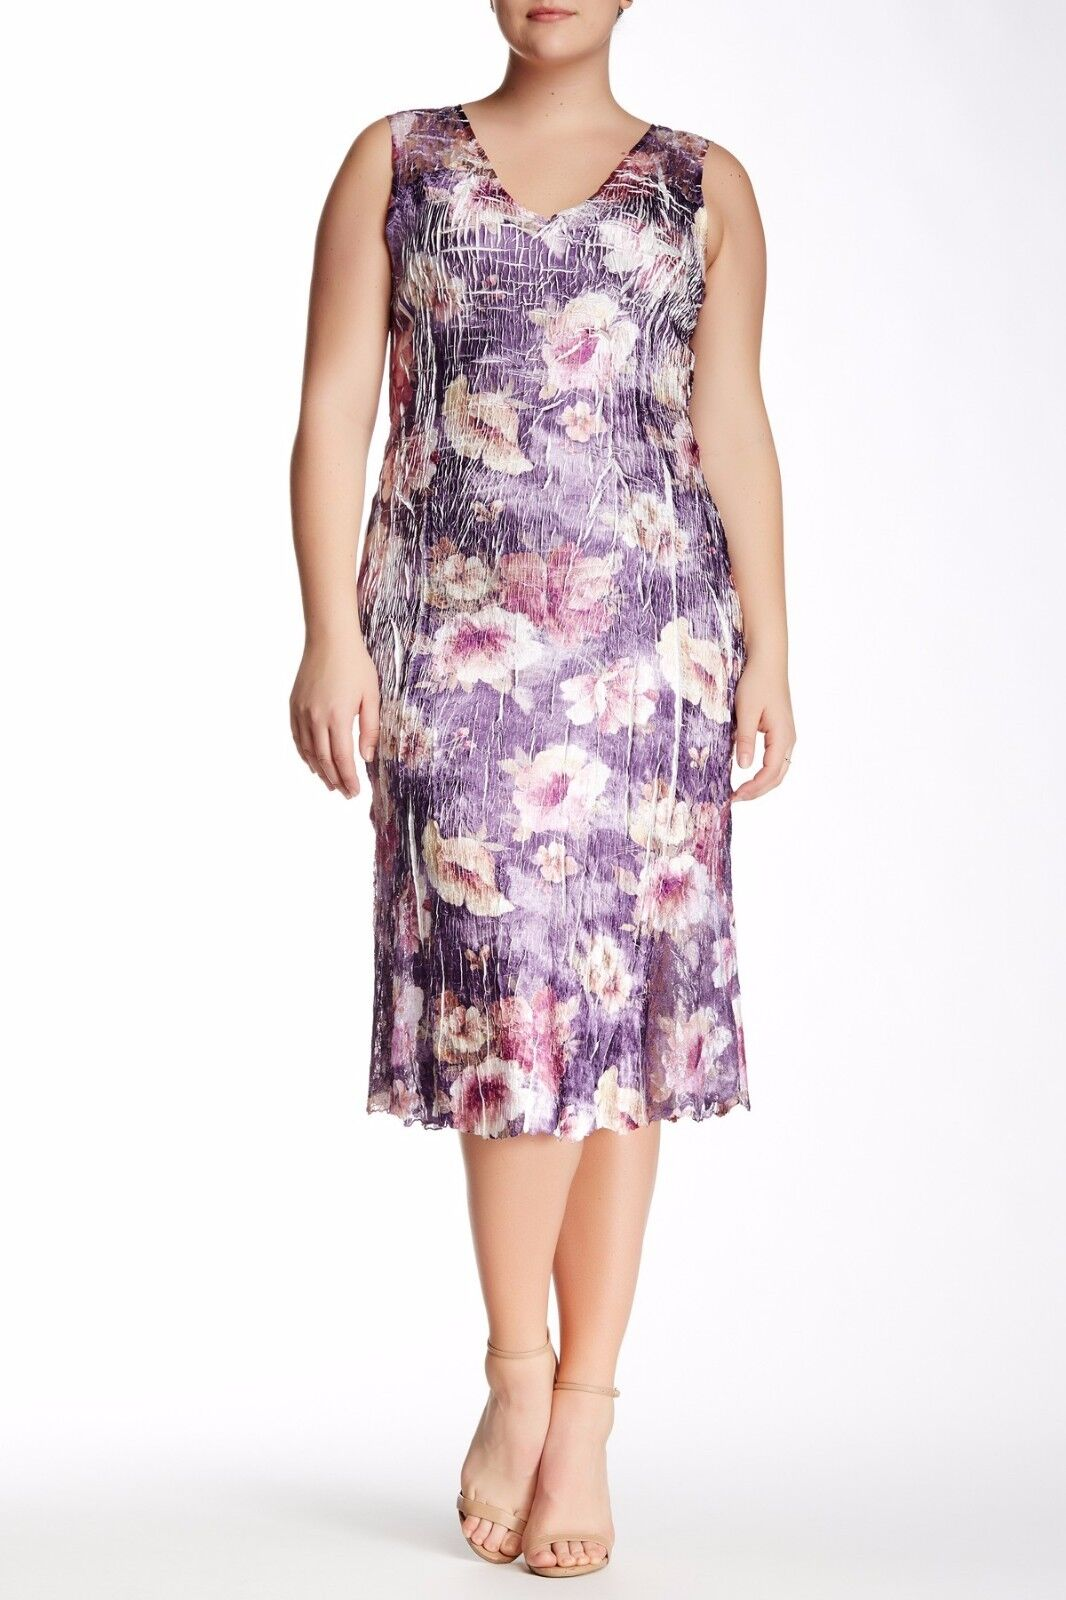 NWT KOMAROV Woman lila Floral Print Lace Trim Sleeveless V-Neck Dress 3X